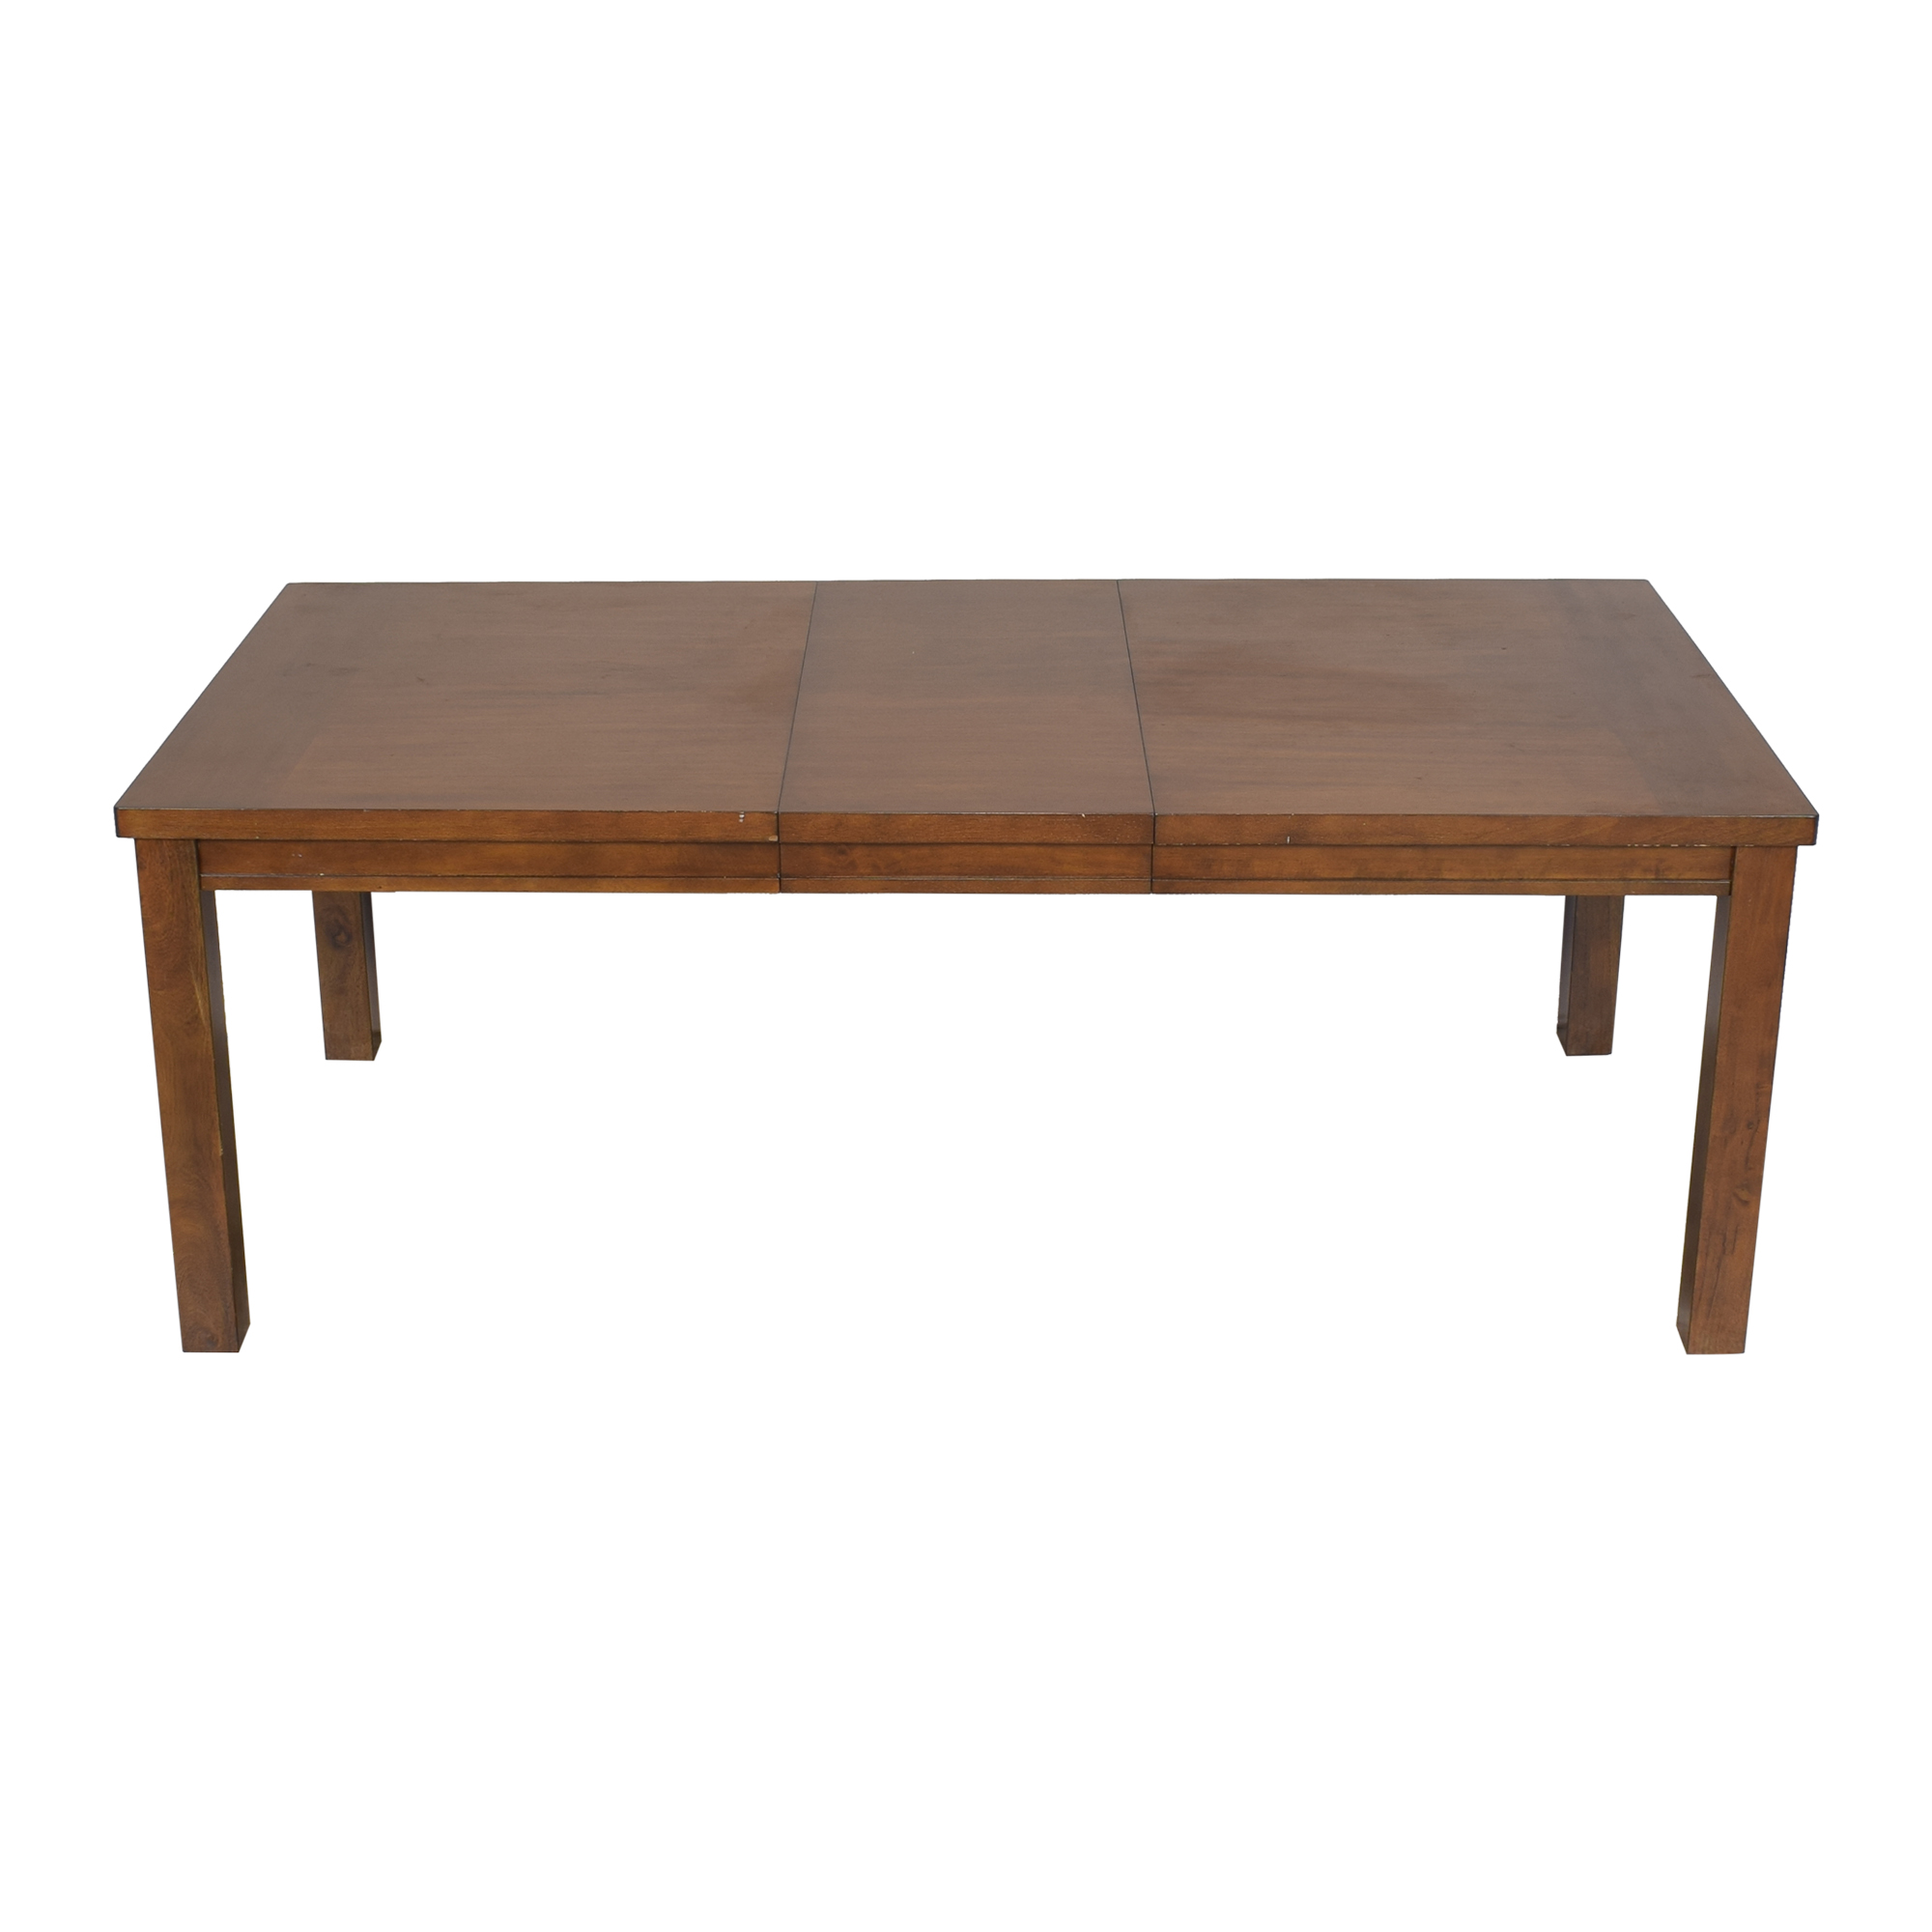 Macy's Macy's Extendable Rectangle Dining Table pa